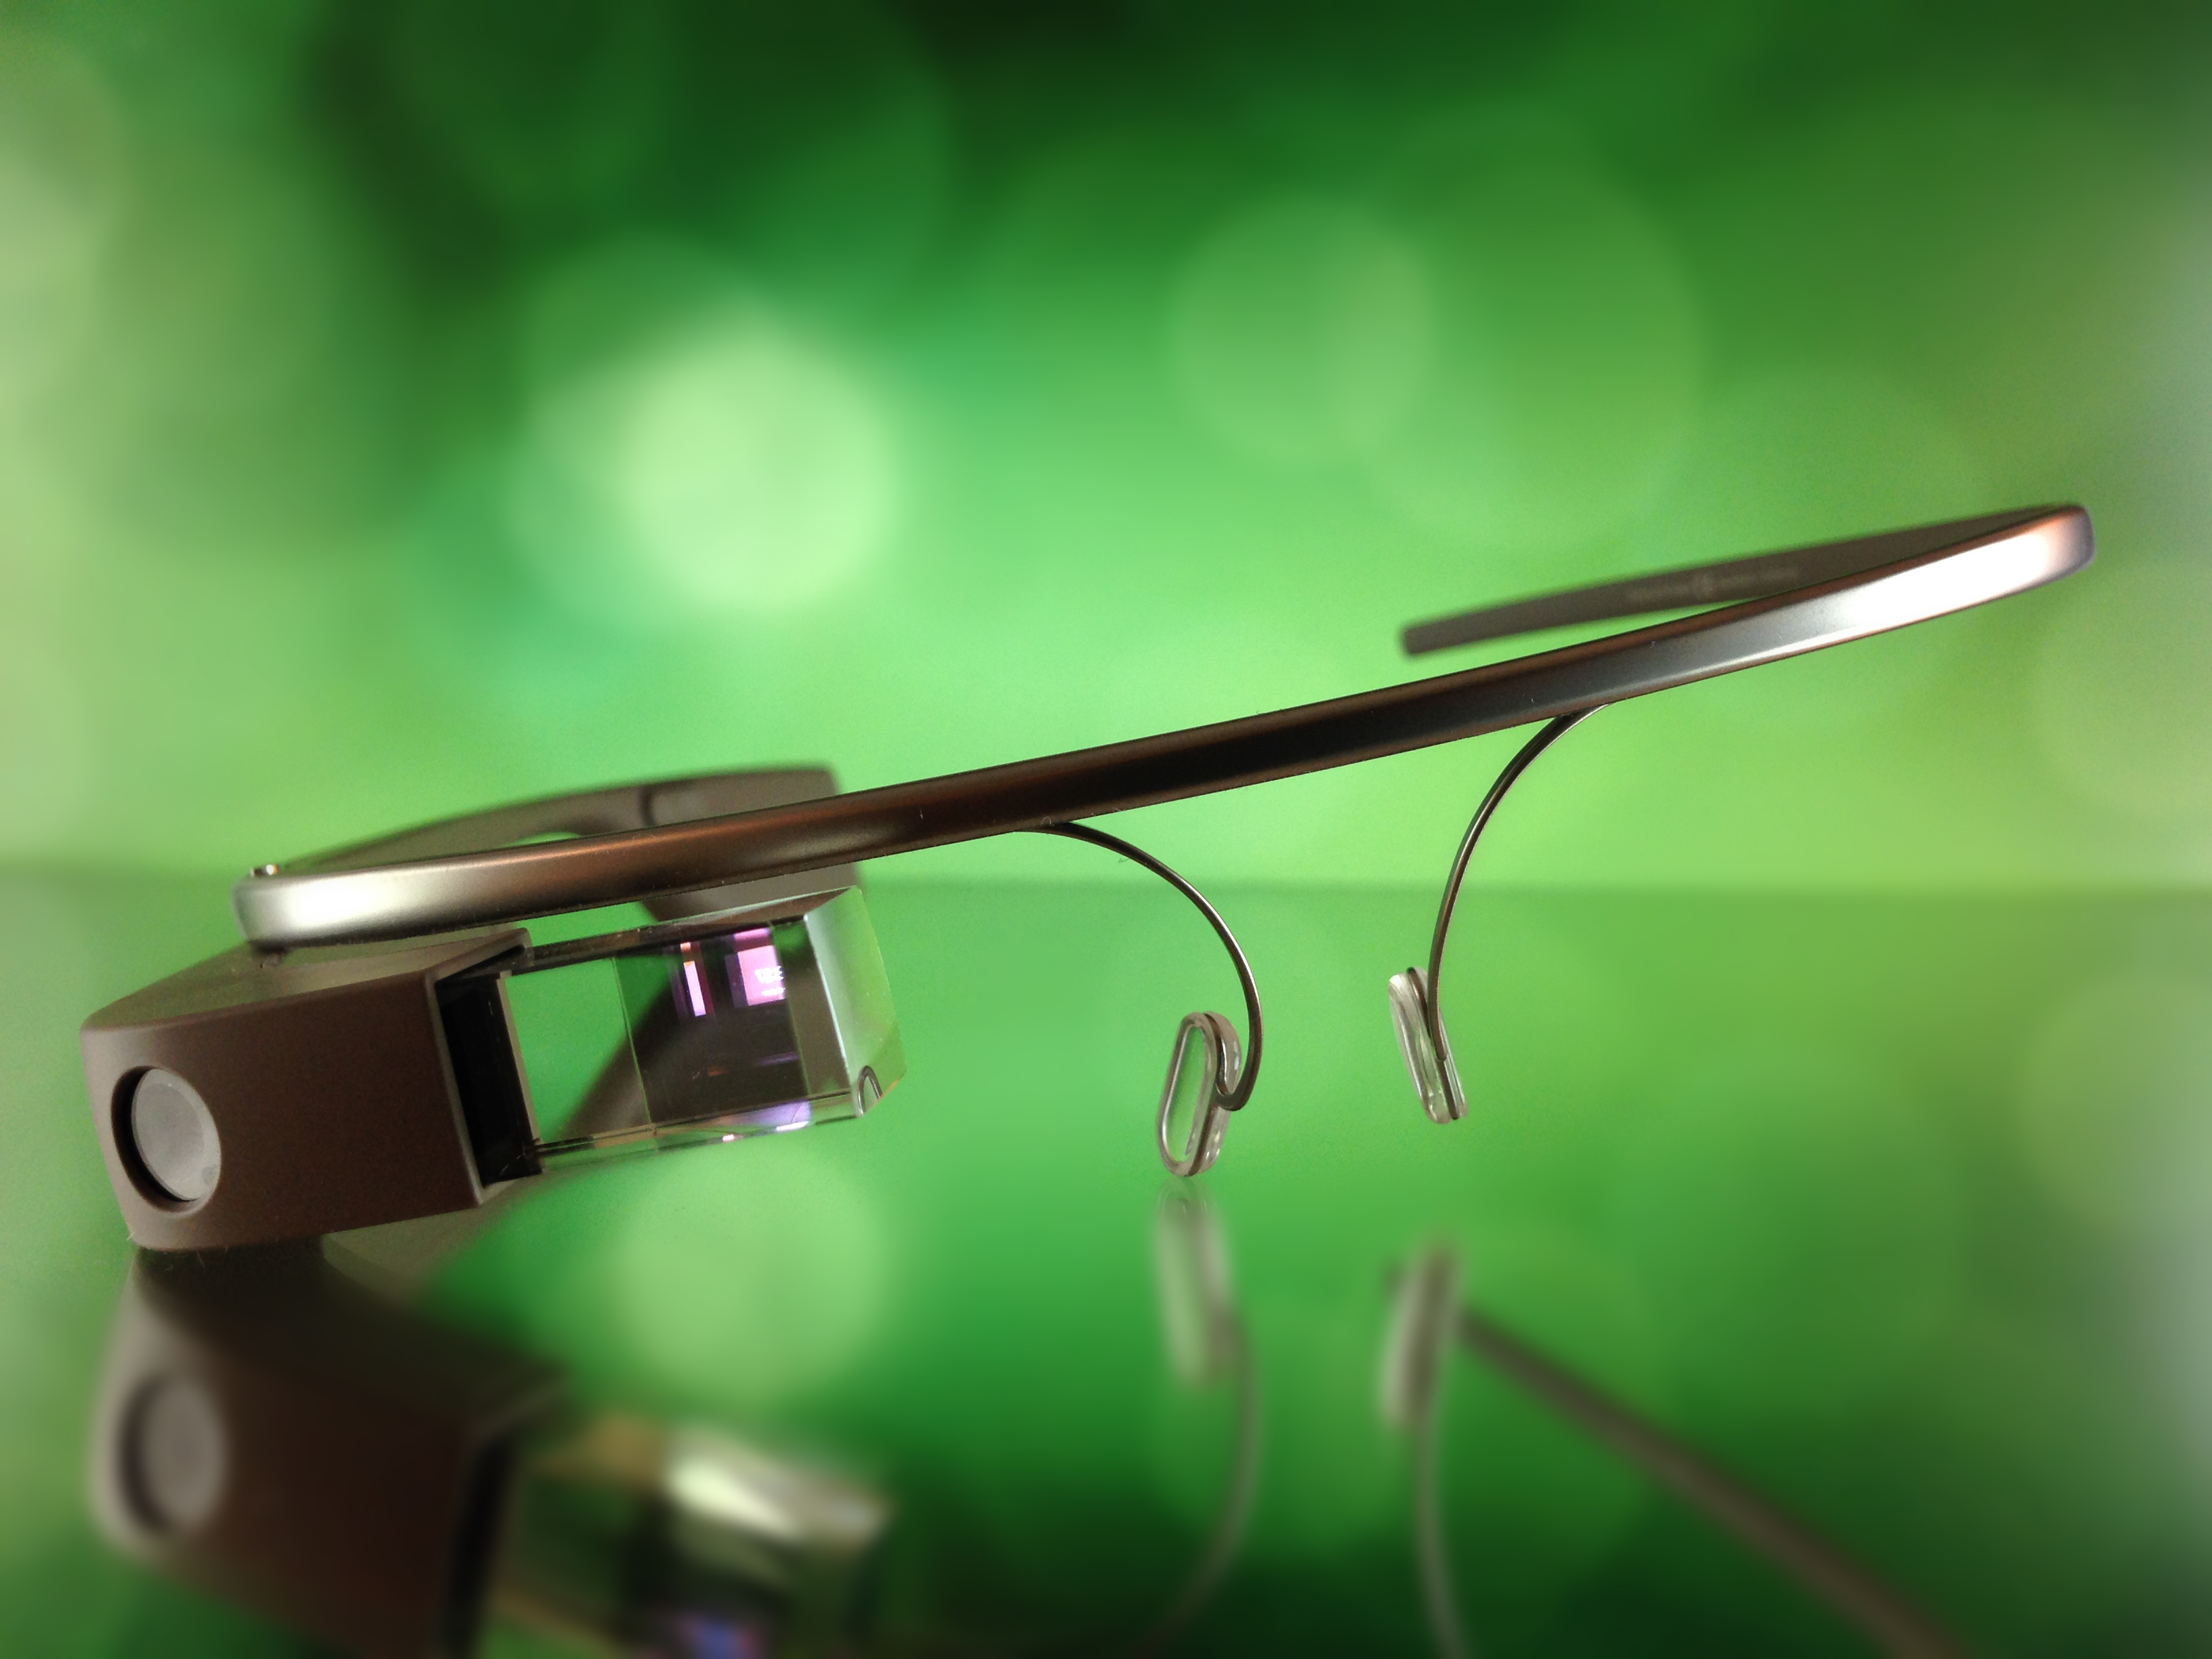 Image of Google Glass on a clear surface with a blurred green background